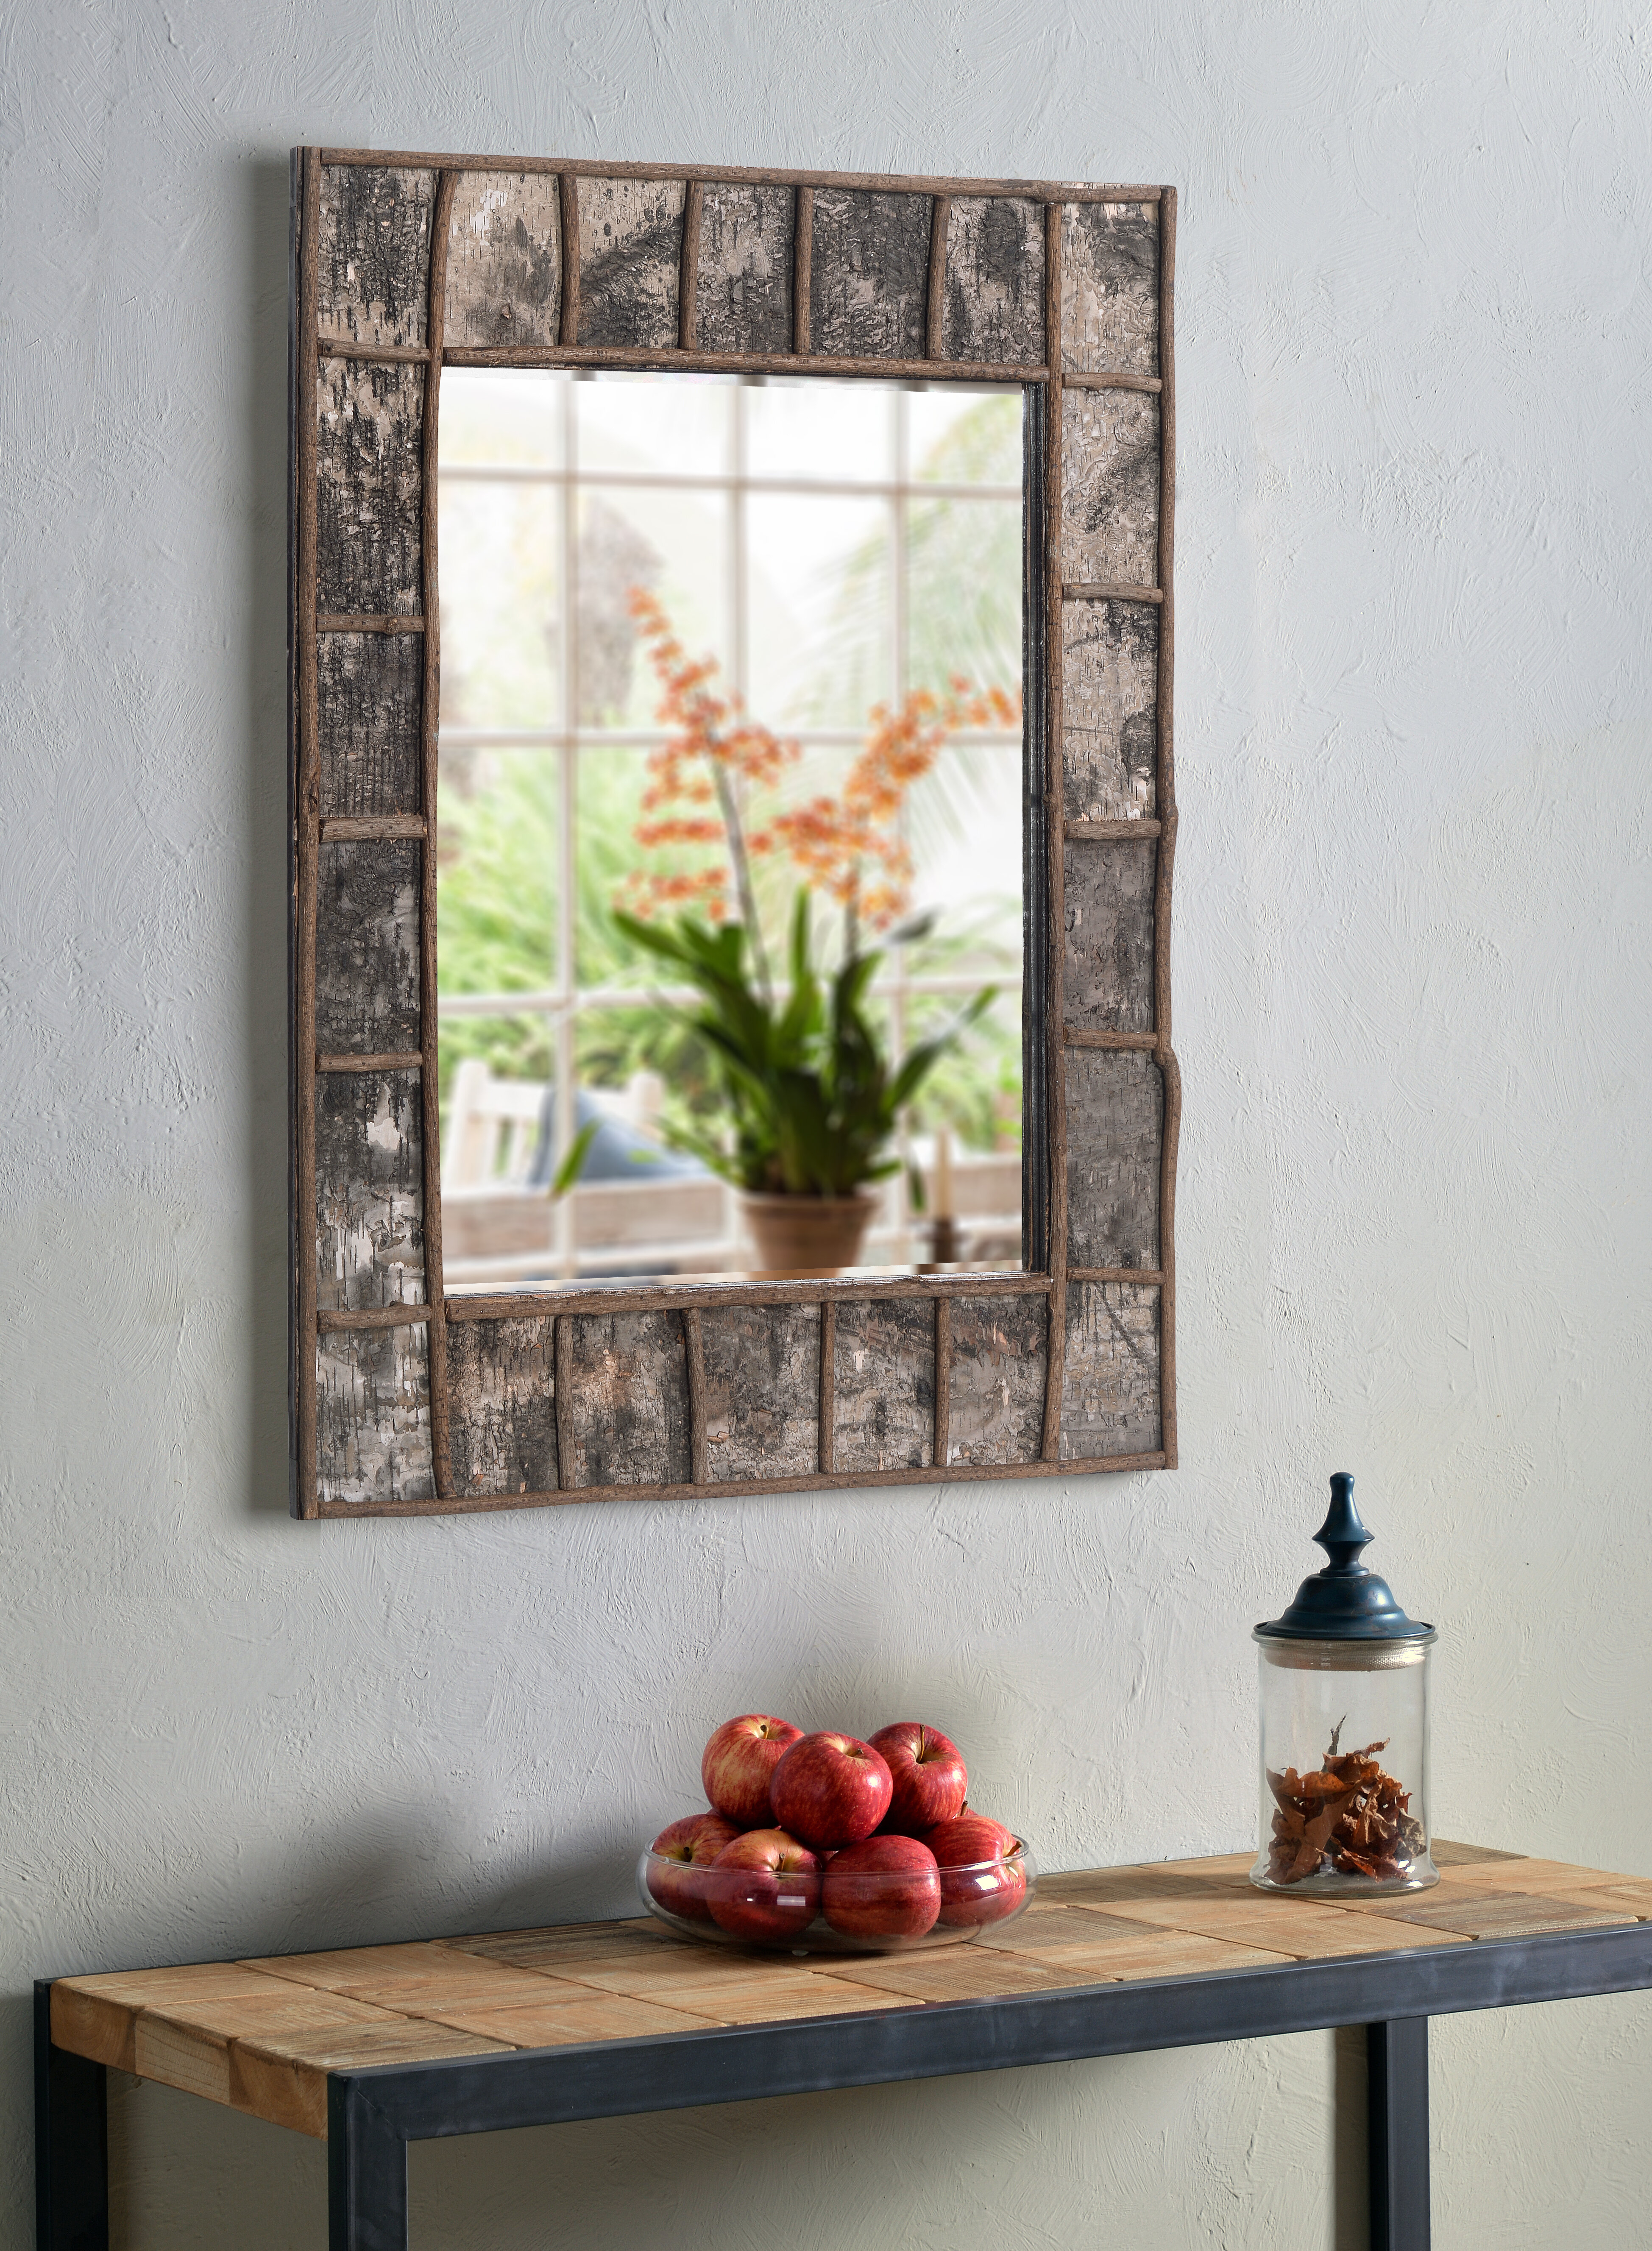 Wurth Birch Bark Traditional Beveled Accent Mirror Regarding Longwood Rustic Beveled Accent Mirrors (Image 20 of 20)